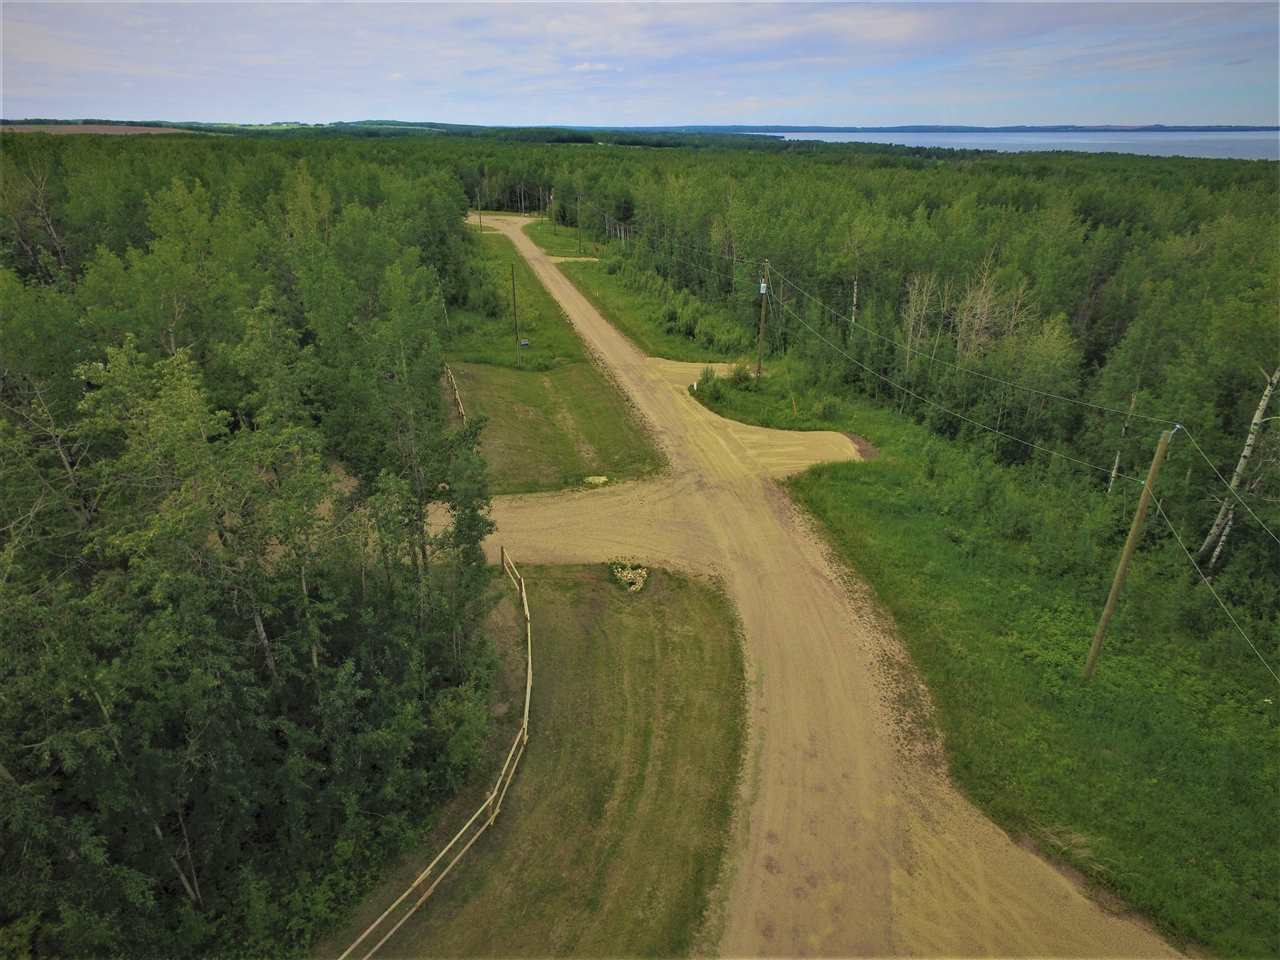 Looking for a Place to Kick back and build your dream Home? This 1.21 acre acreage is covered in Trees and has a Rolling Lot to accommodate a Walk-out Basement Home. Located close to Pigeon Lake for Recreation, Shopping and Golf Courses. Plus Applicable GST Several Lots and Prices to Choose.